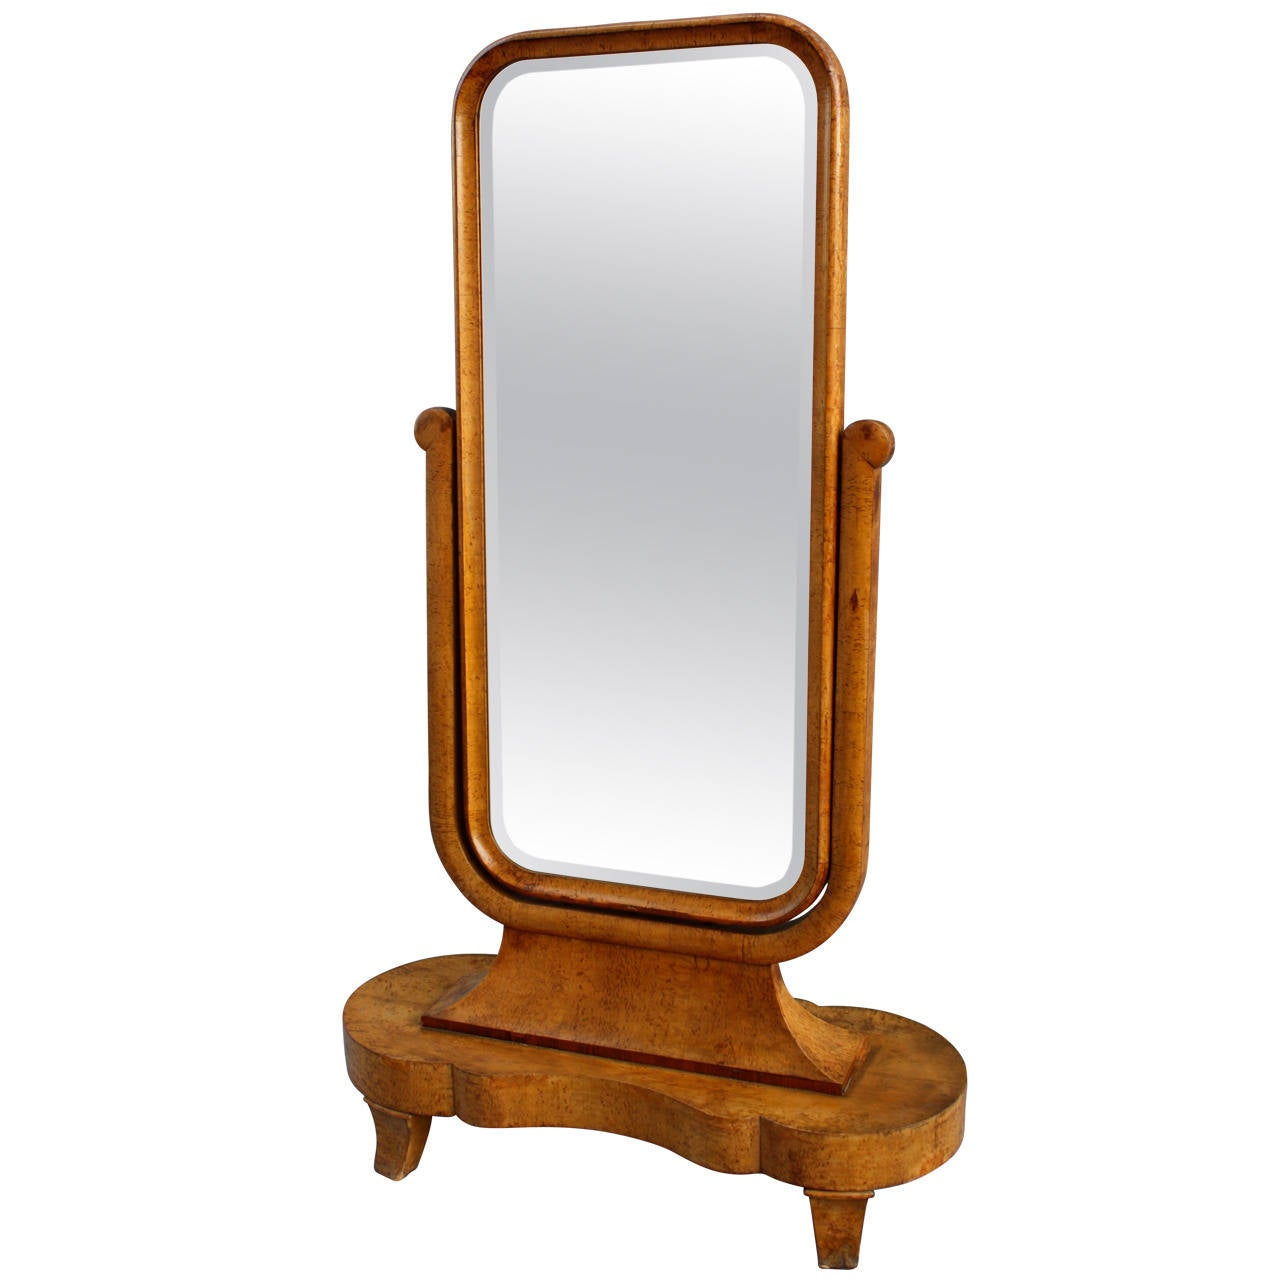 Magnificent art deco standing cheval mirror for sale at for Floor length mirror for sale